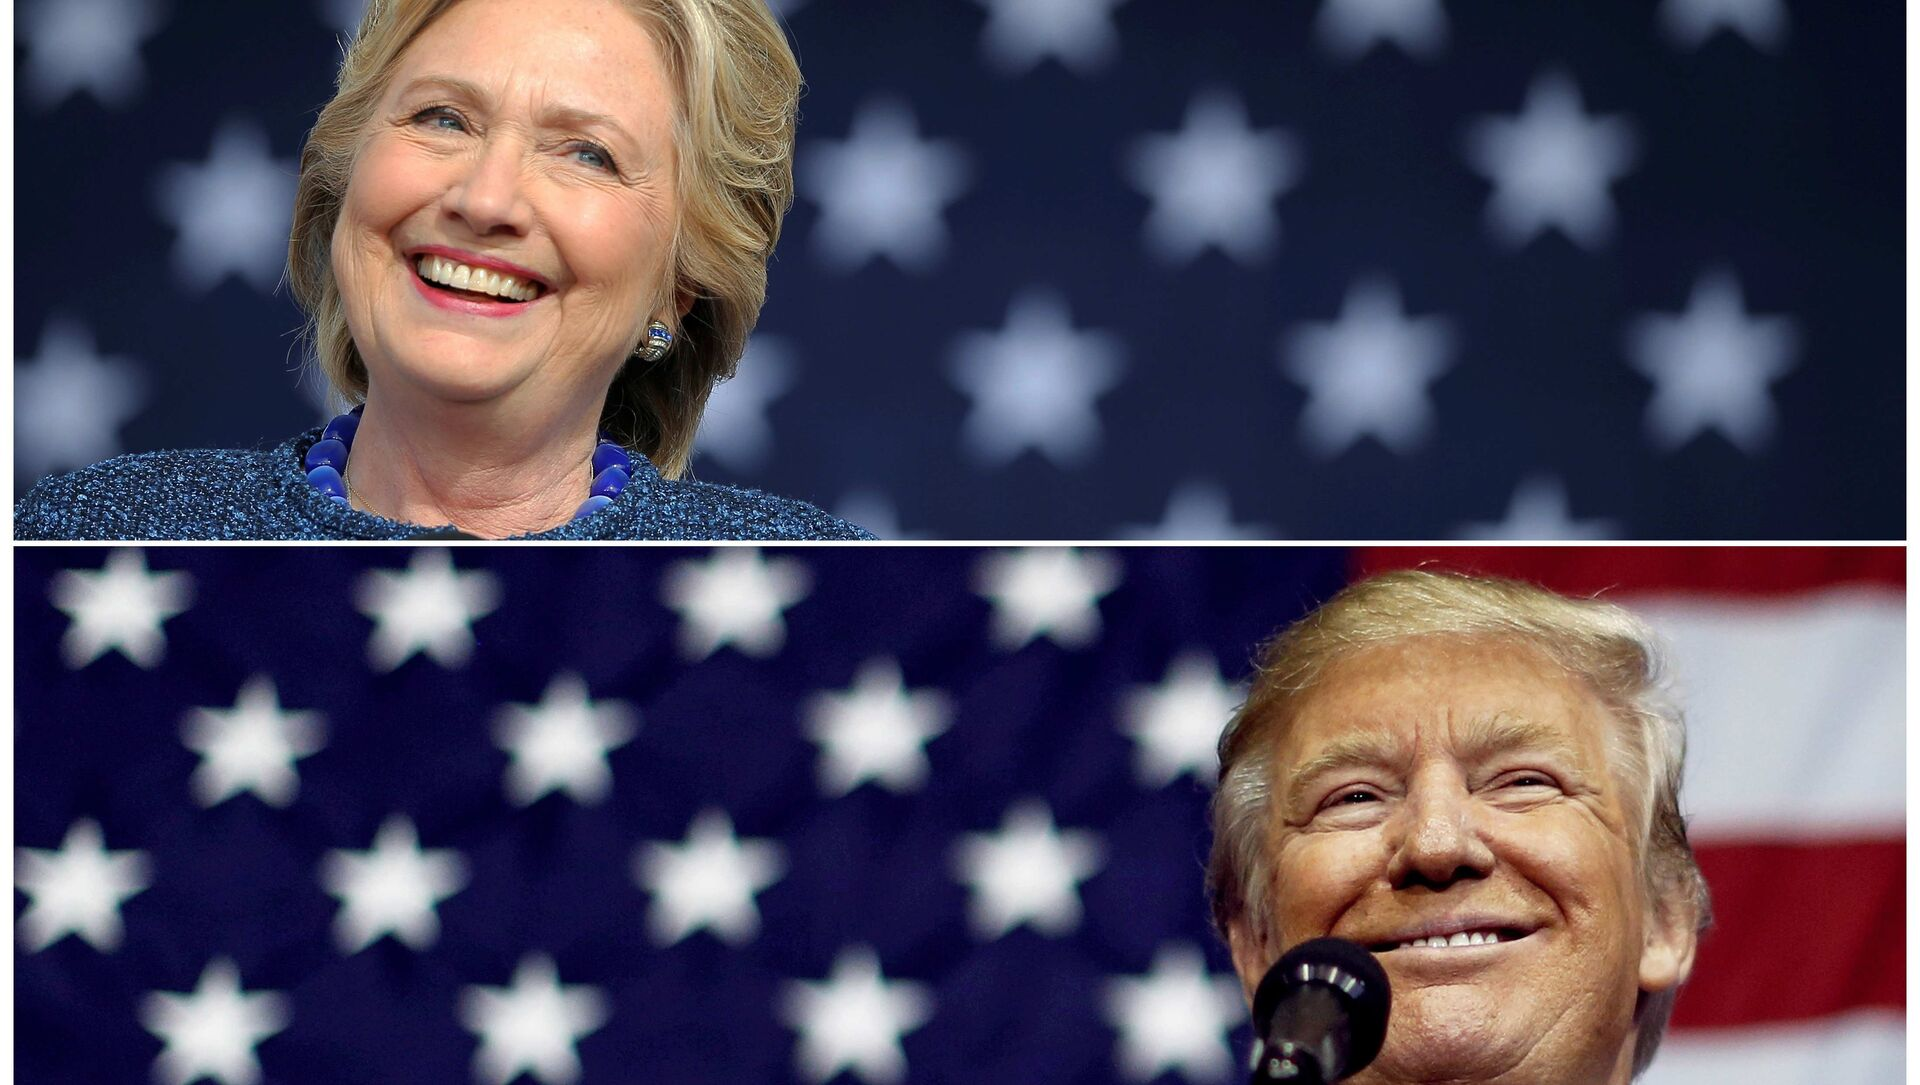 U.S. presidential nominees Hillary Clinton (top) and Donald Trump speak at campaign rallies in Cedar Rapids, Iowa, U.S. October 28, 2016 and Delaware, Ohio October 20, 2016 in a combination of file photos. - Sputnik International, 1920, 05.08.2021